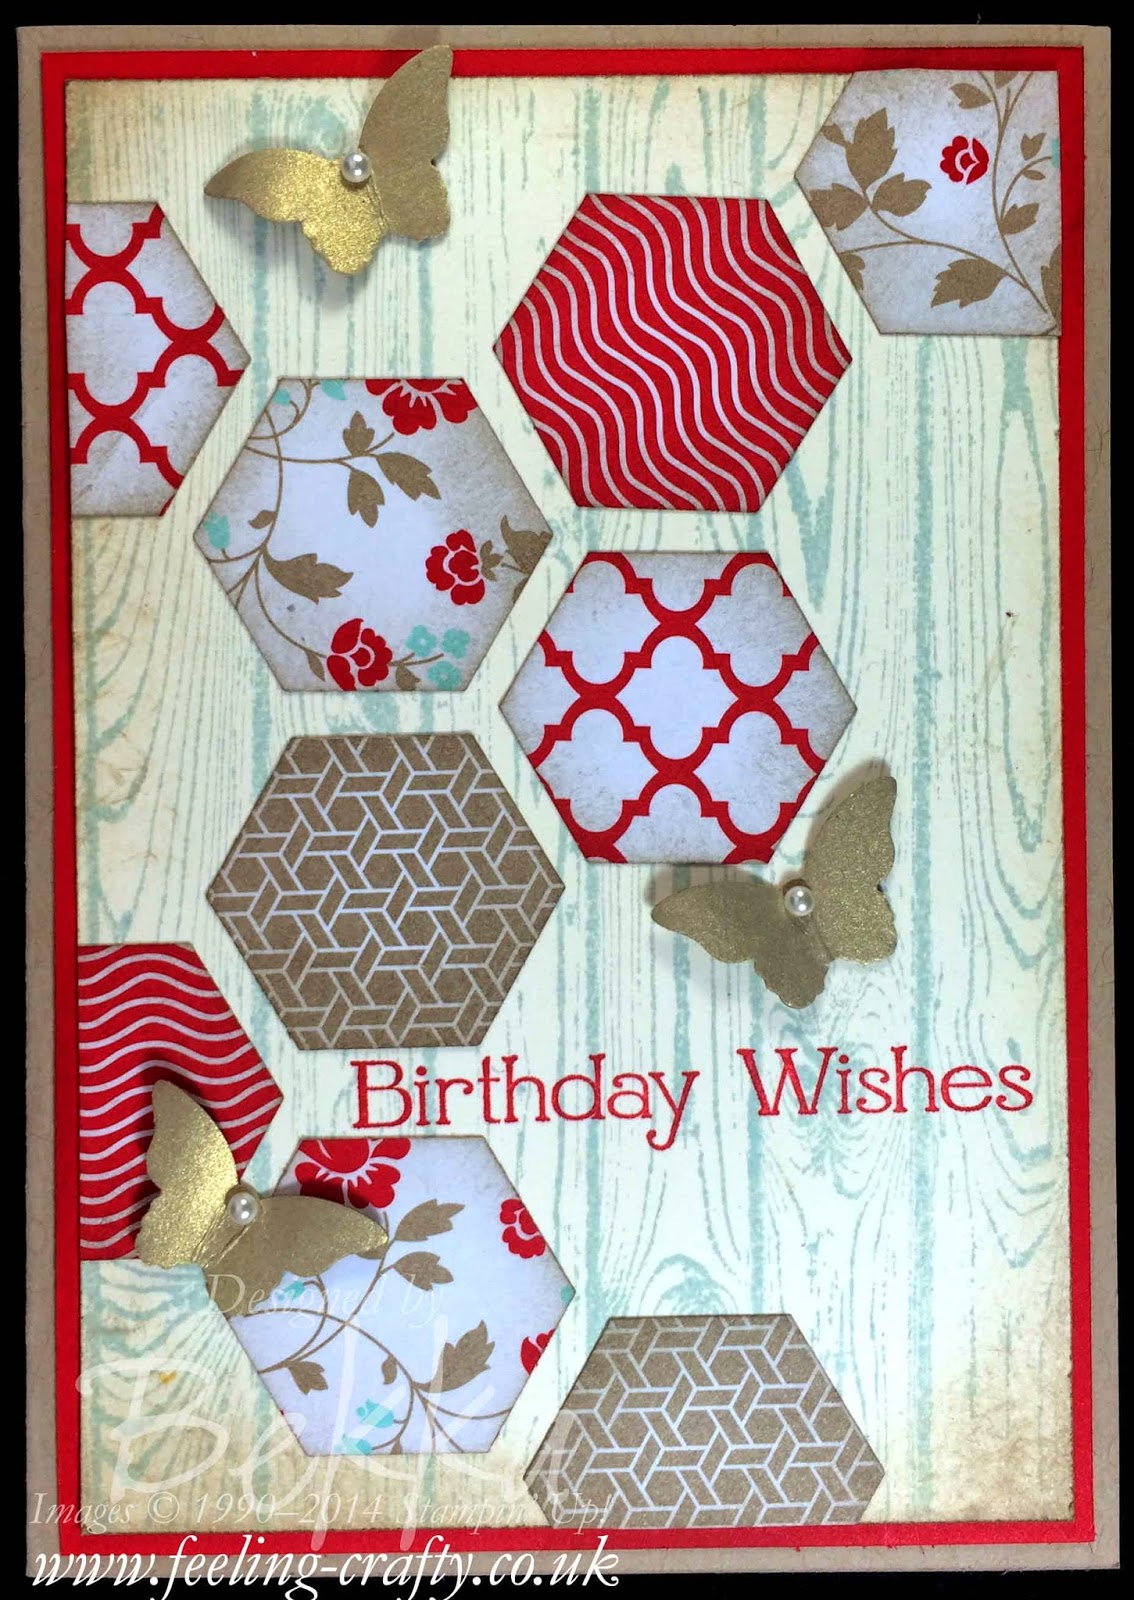 Hardwood and Hexagons Butterfly Birthday Card by Stampin' Up! UK Independent Demonstrator Bekka - check out her blog here